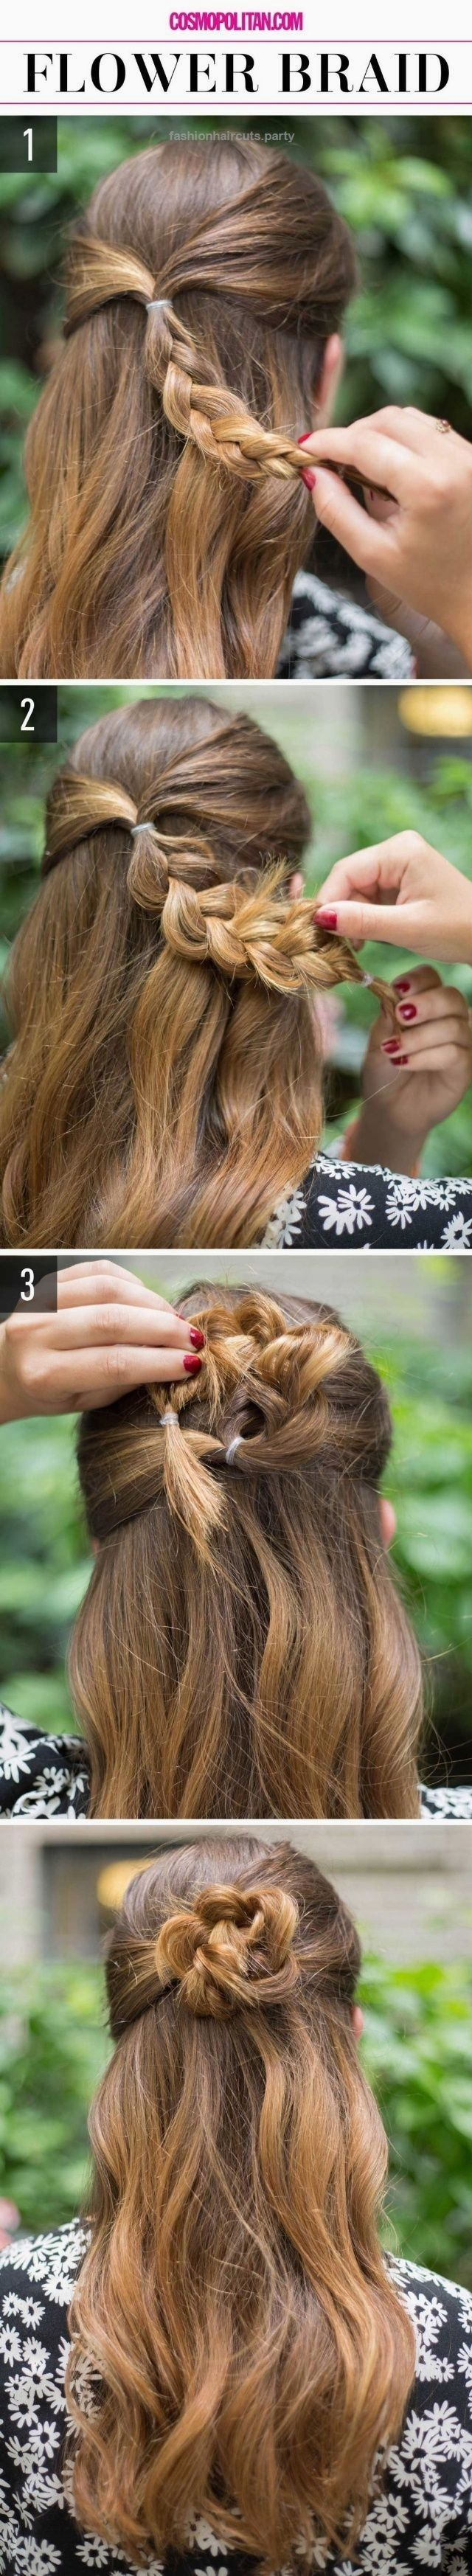 15 Super Easy Hairstyles for Girls in 2016 – Three Step Hairstyles for Girls…  15 Super Easy Hairstyles for Girls in 2016 – Three Step Hairstyles for Girls  http://www.fashionhaircuts.party/2017/06/12/15-super-easy-hairstyles-for-girls-in-2016-three-step-hairstyles-for-girls-10/